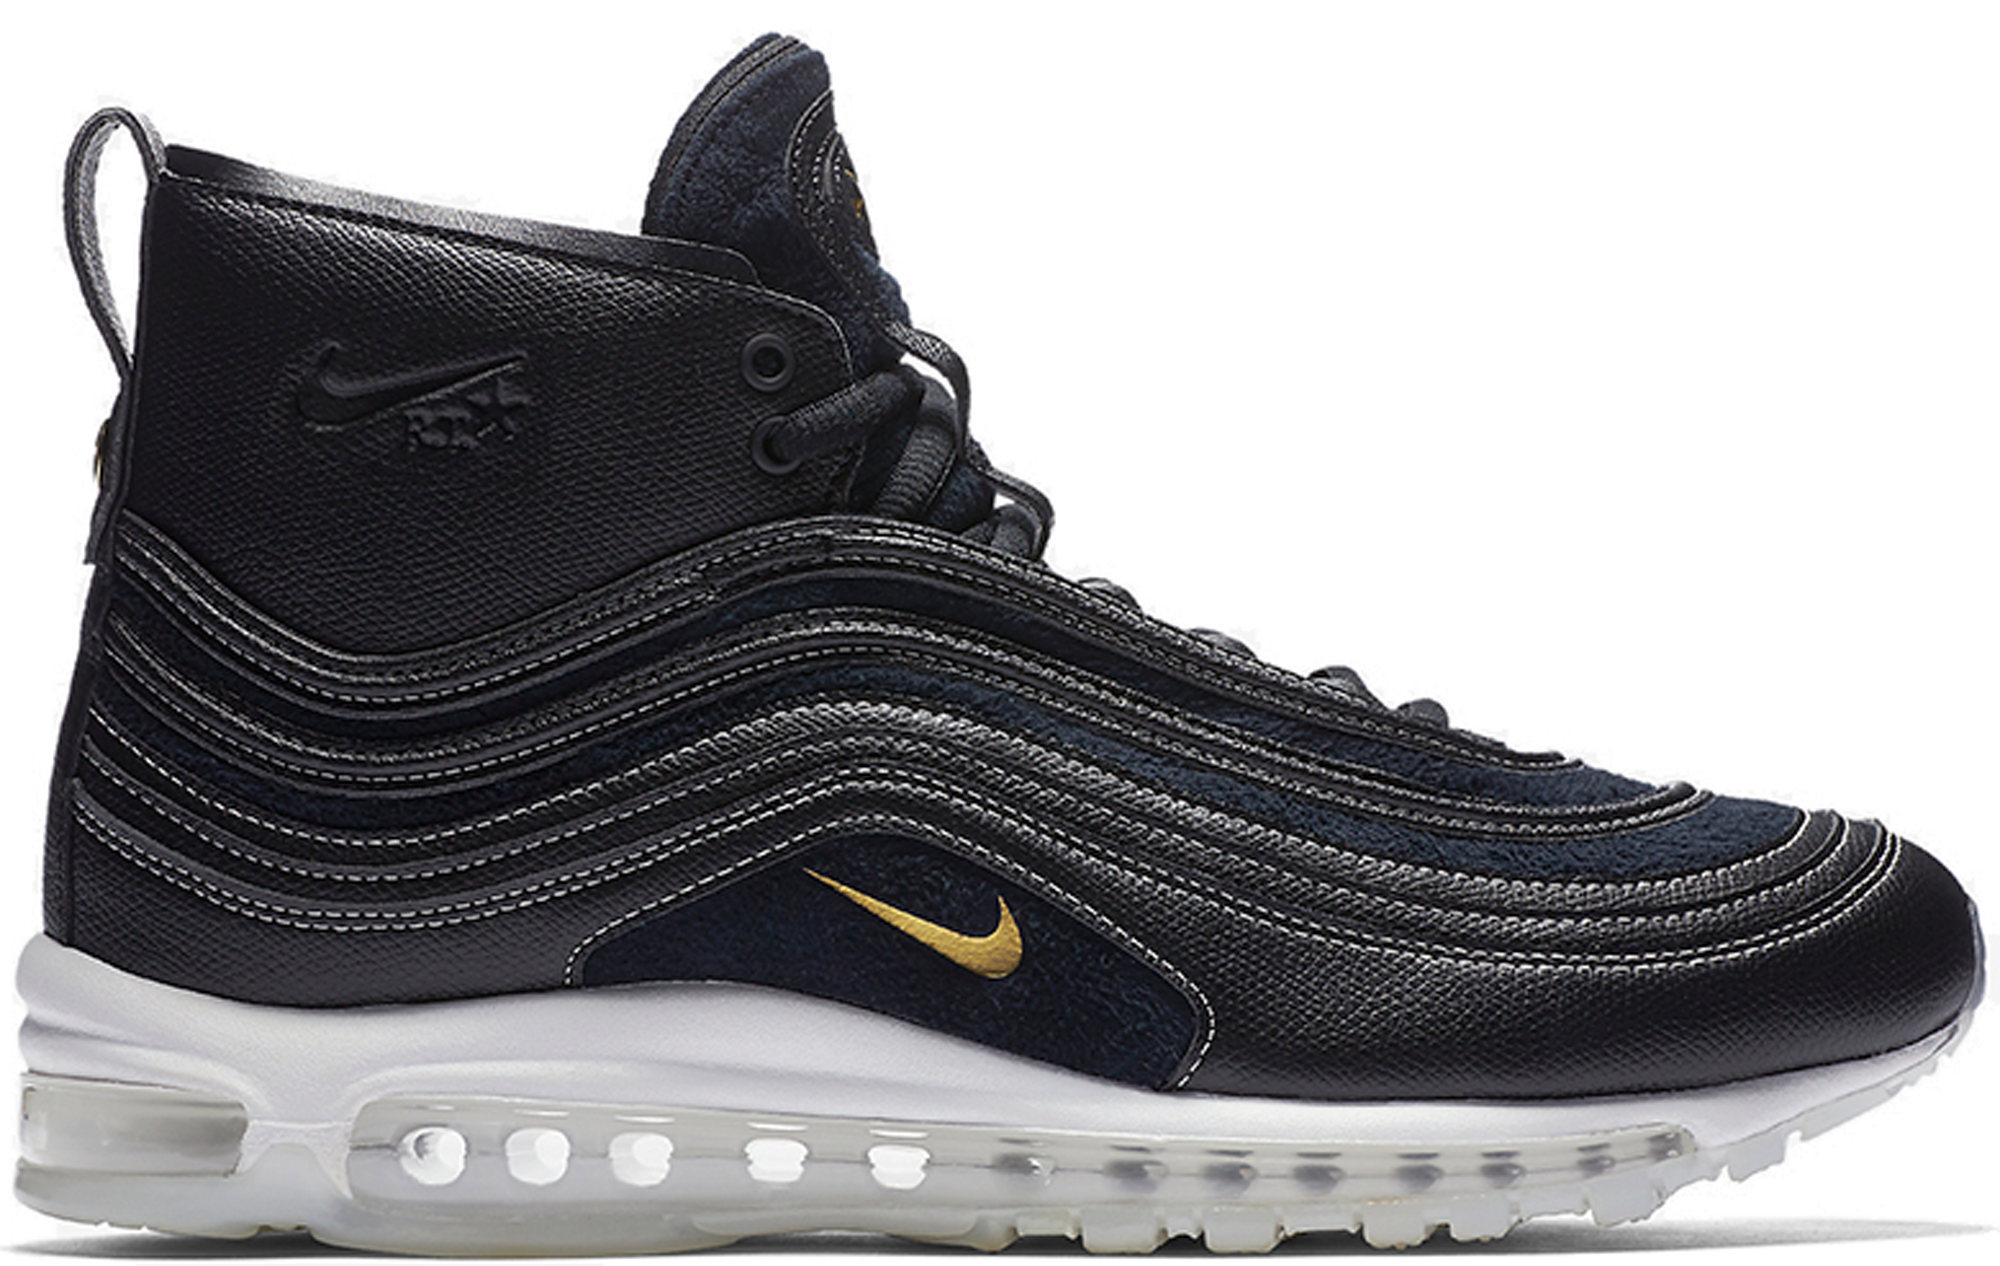 the best attitude 15c58 ddf25 Riccardo Tisci x Nike Air Max 97 Black - StockX News